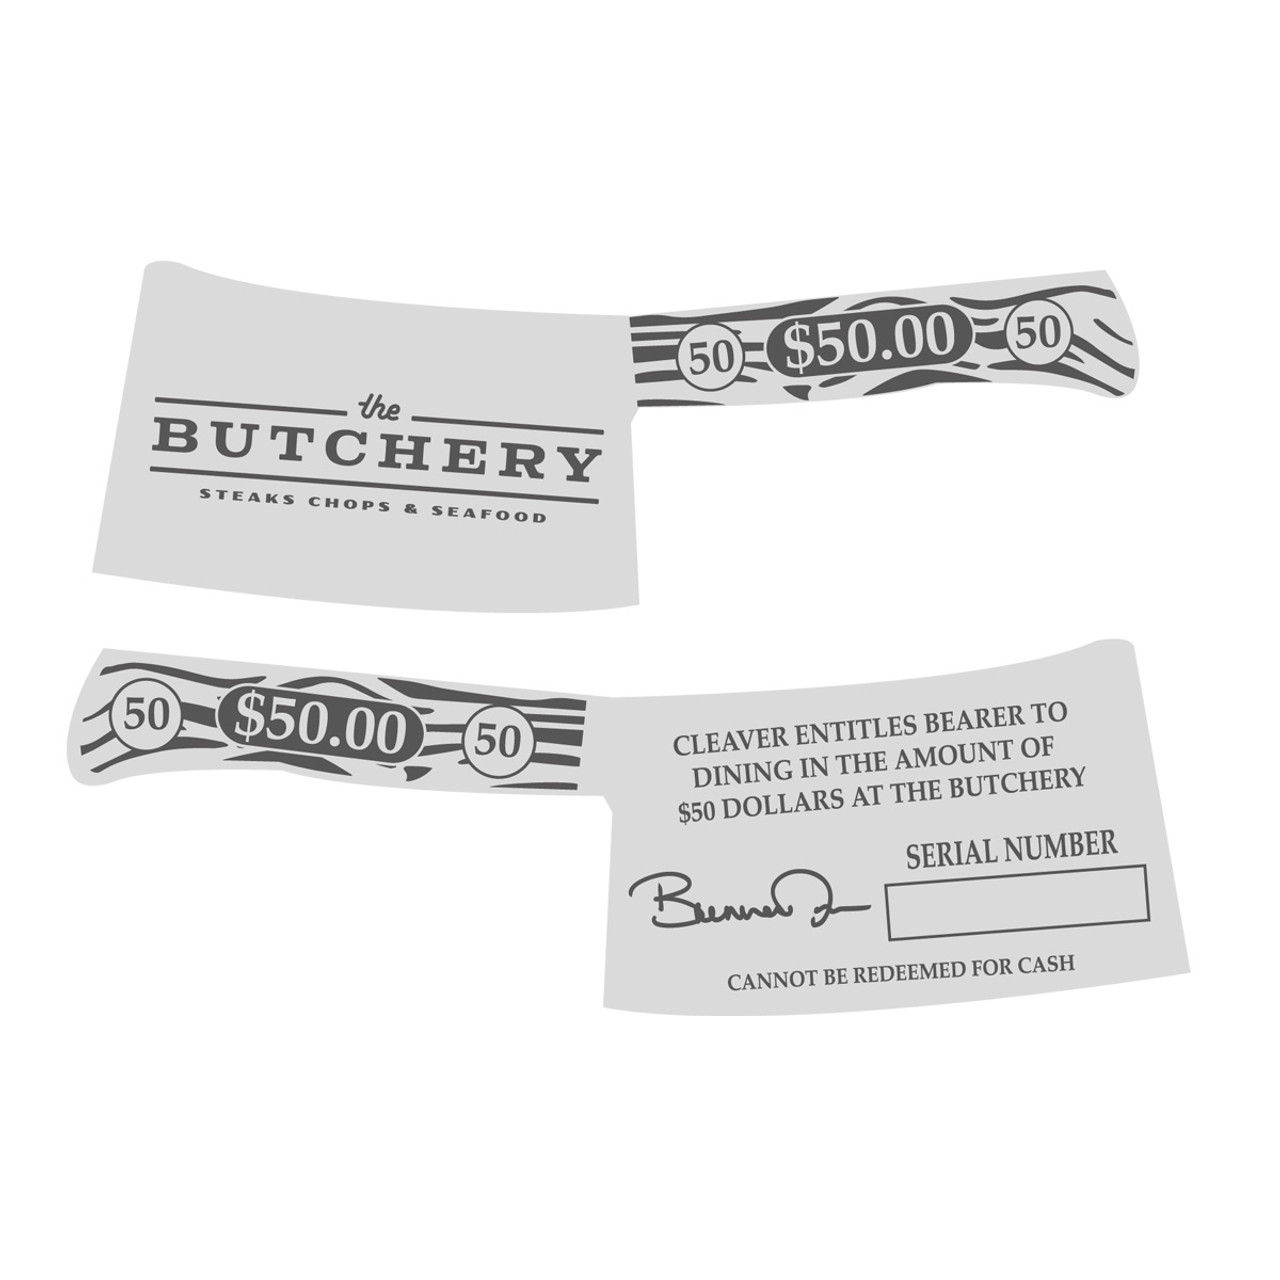 The Butchery Gift Cards $50 bronze NEW (RESTRICTED)